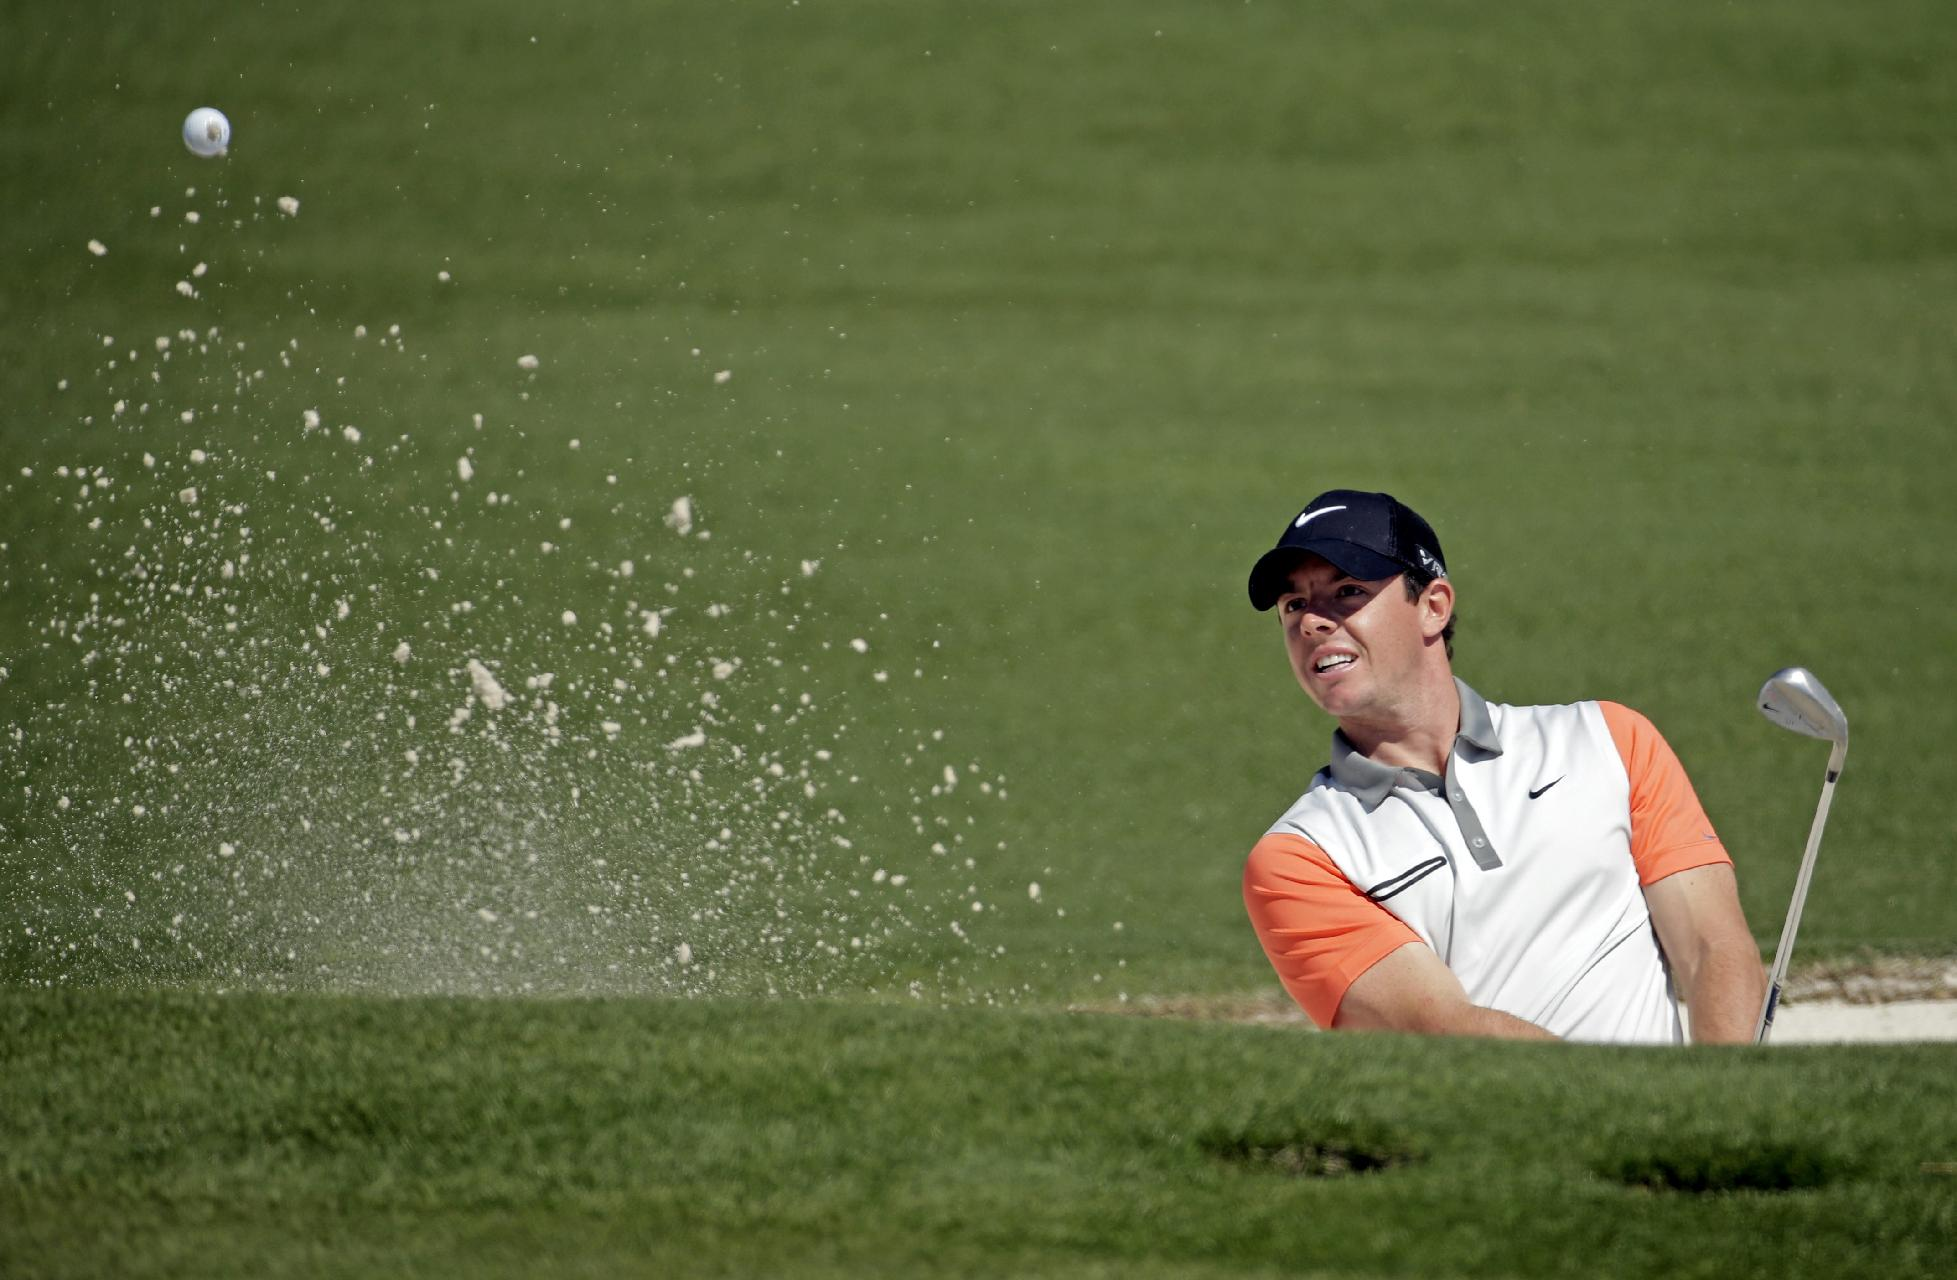 Rory McIlroy, of Northern Ireland, hits out of a bunker on the second green during the first round of the Masters golf tournament Thursday, April 10, 2014, in Augusta, Ga